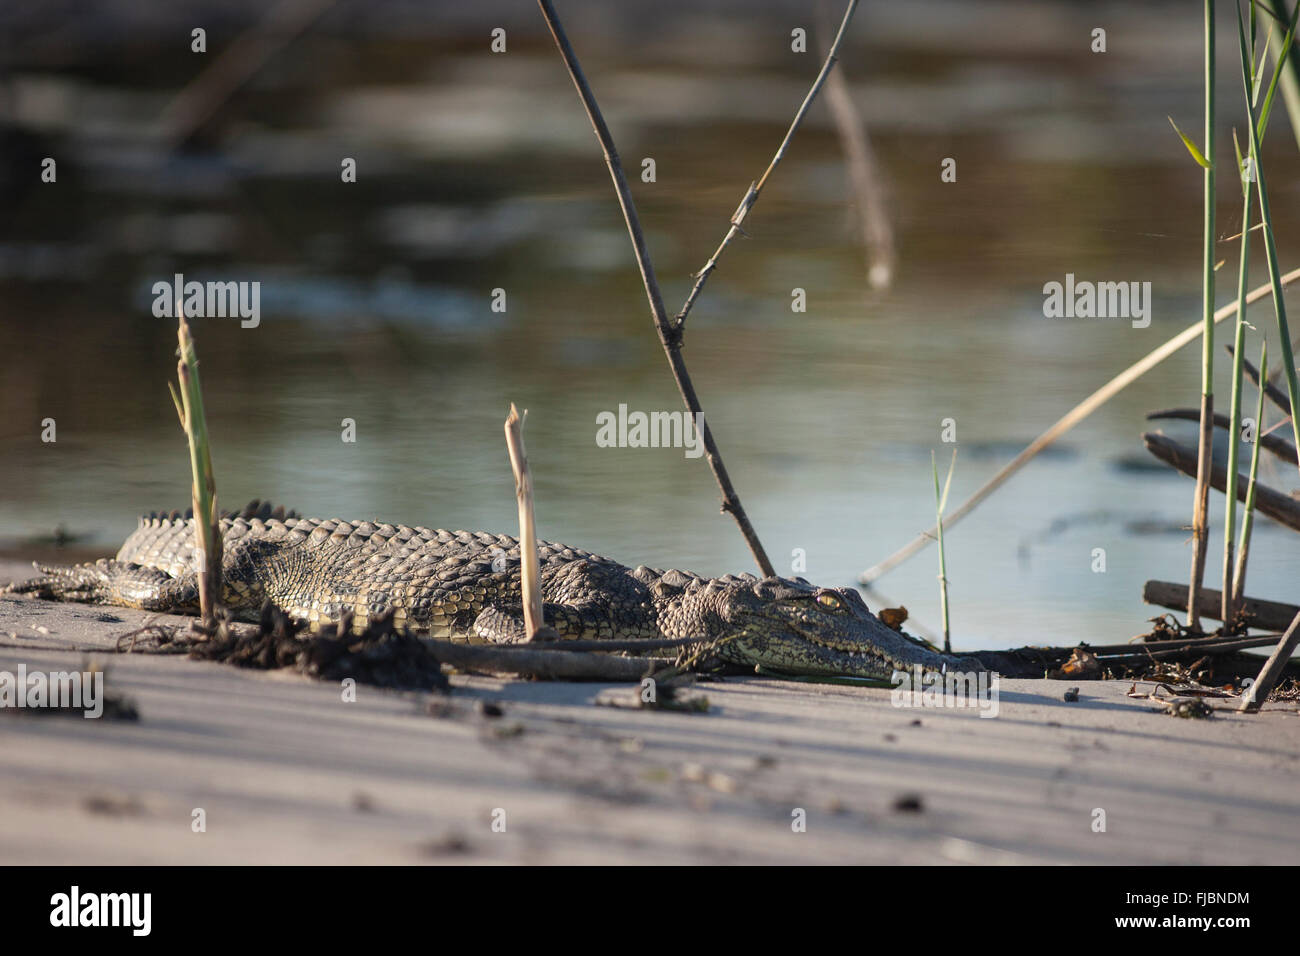 A crocodile in Africa - Stock Image